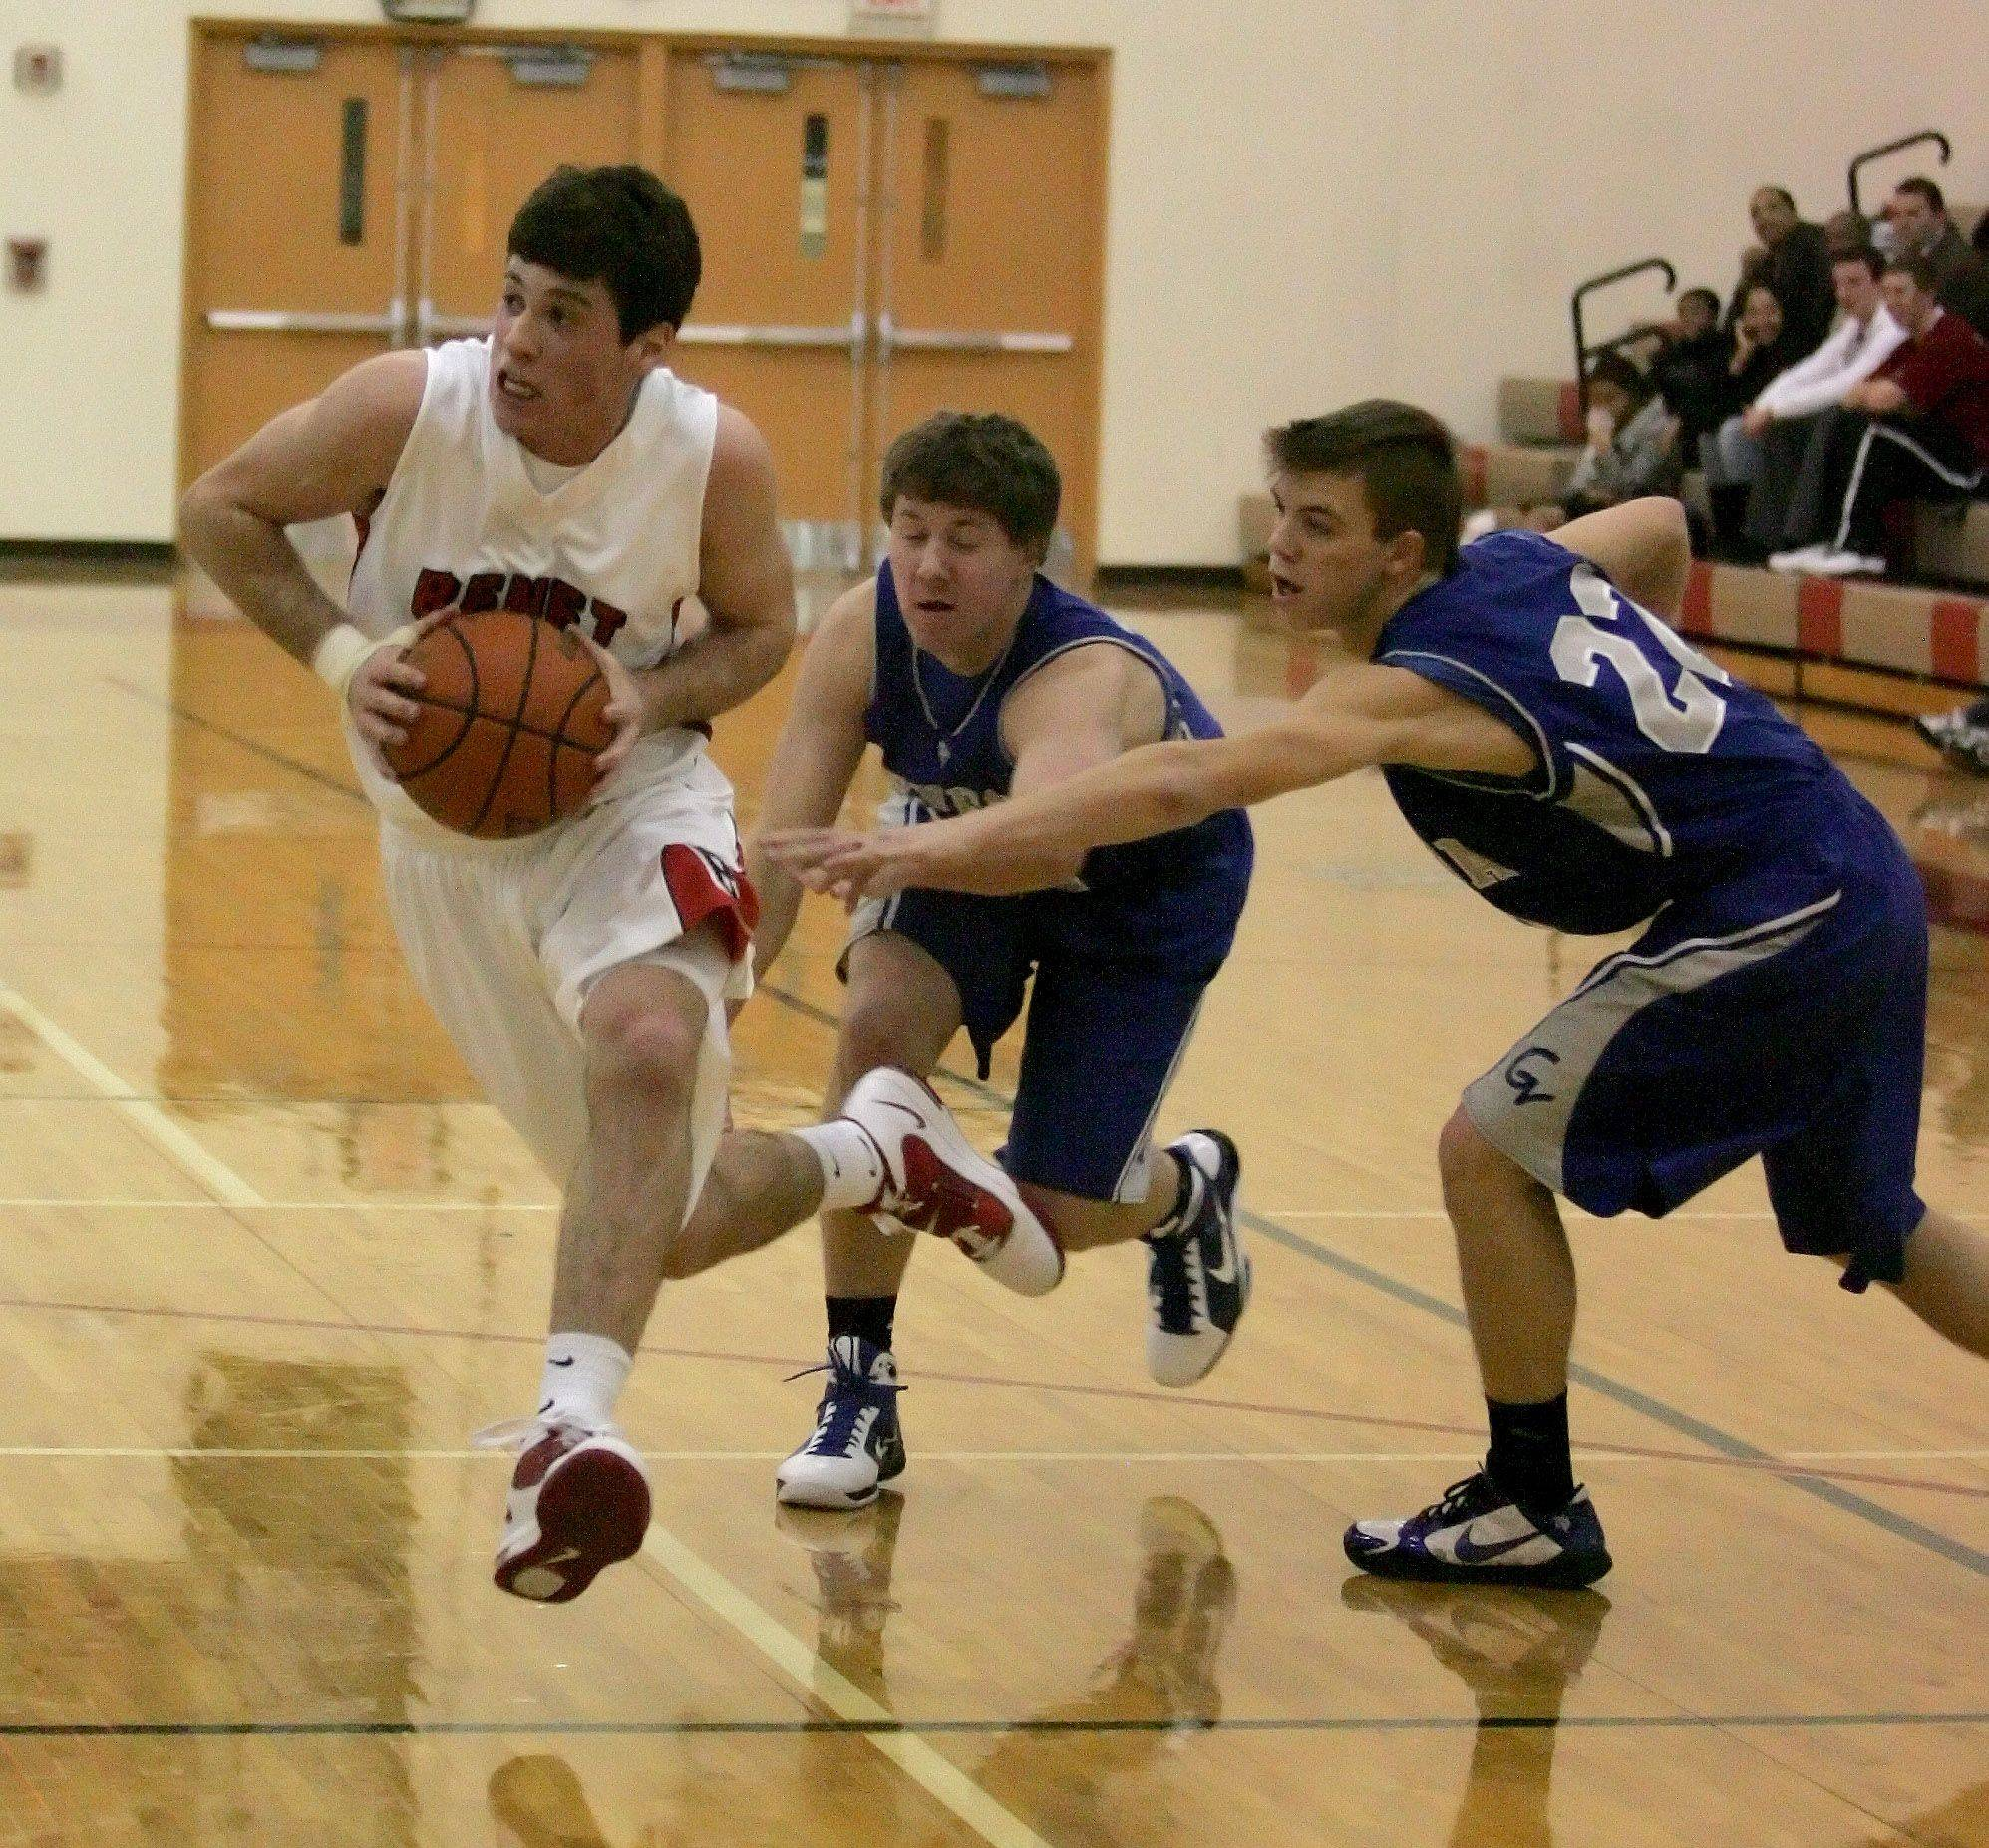 Dave Sobolewski of Benet, left, eludes John Swiderski, center and Ryan Willing, right, of Geneva in boys basketball action at the Plainfield North Holiday Tournament on Friday.